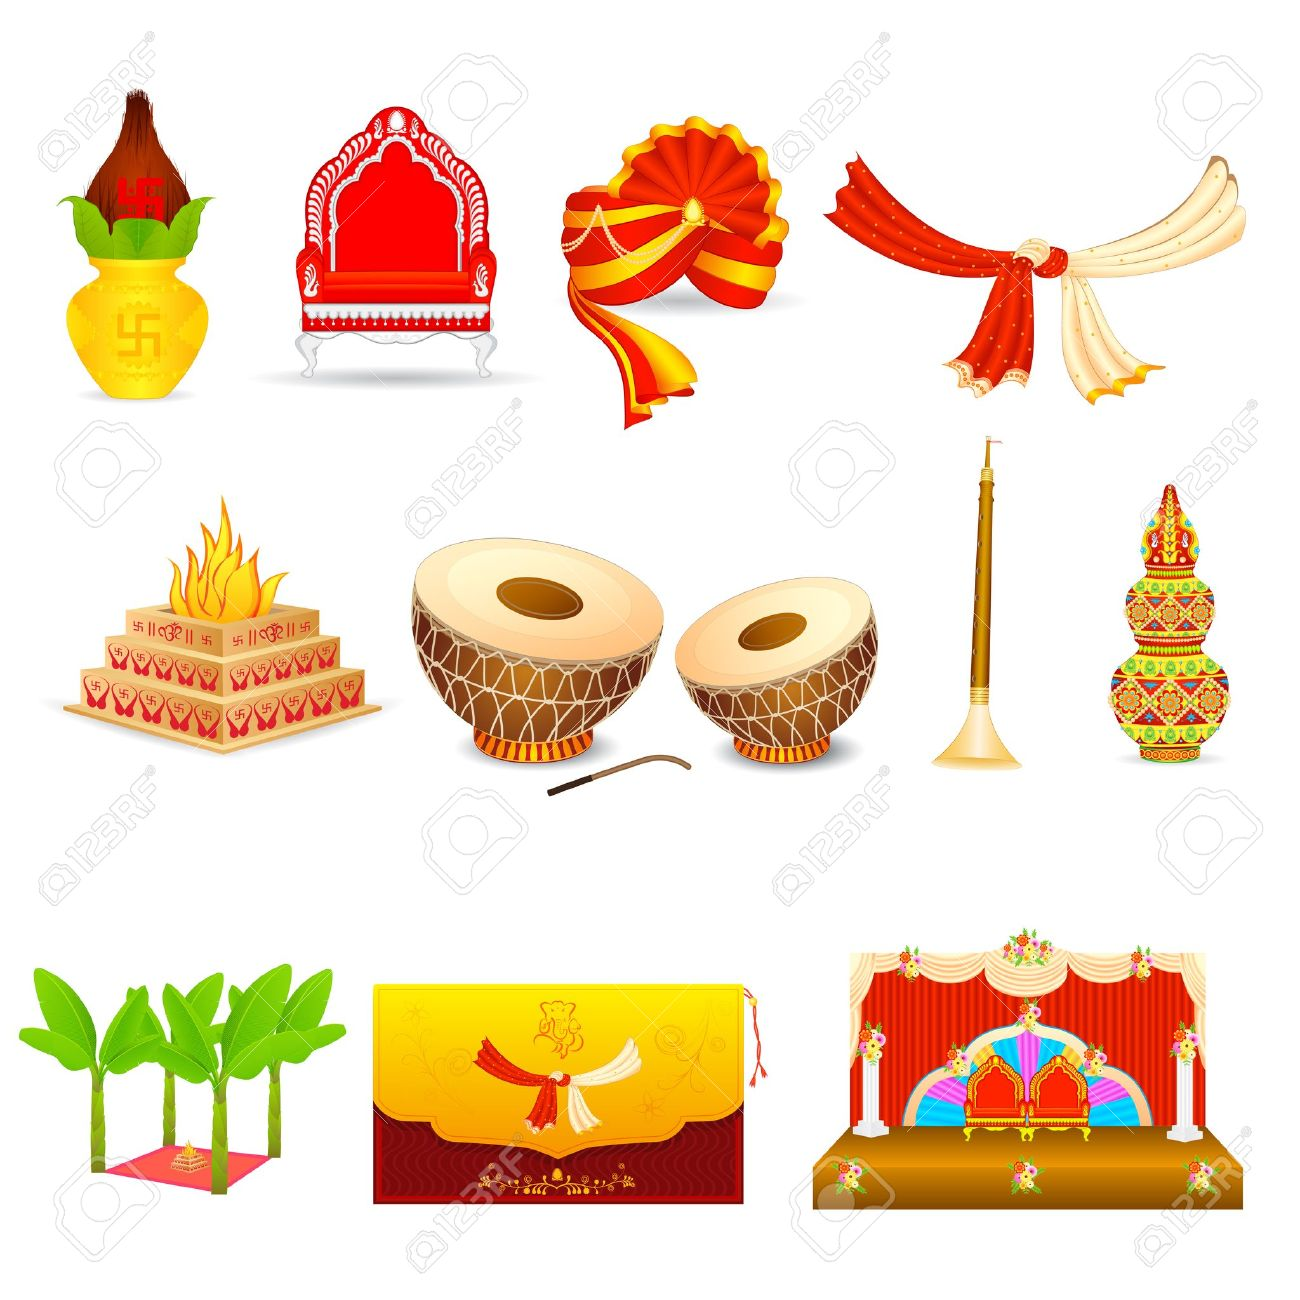 Indian wedding cliparts - Indian Wedding PNG Vector